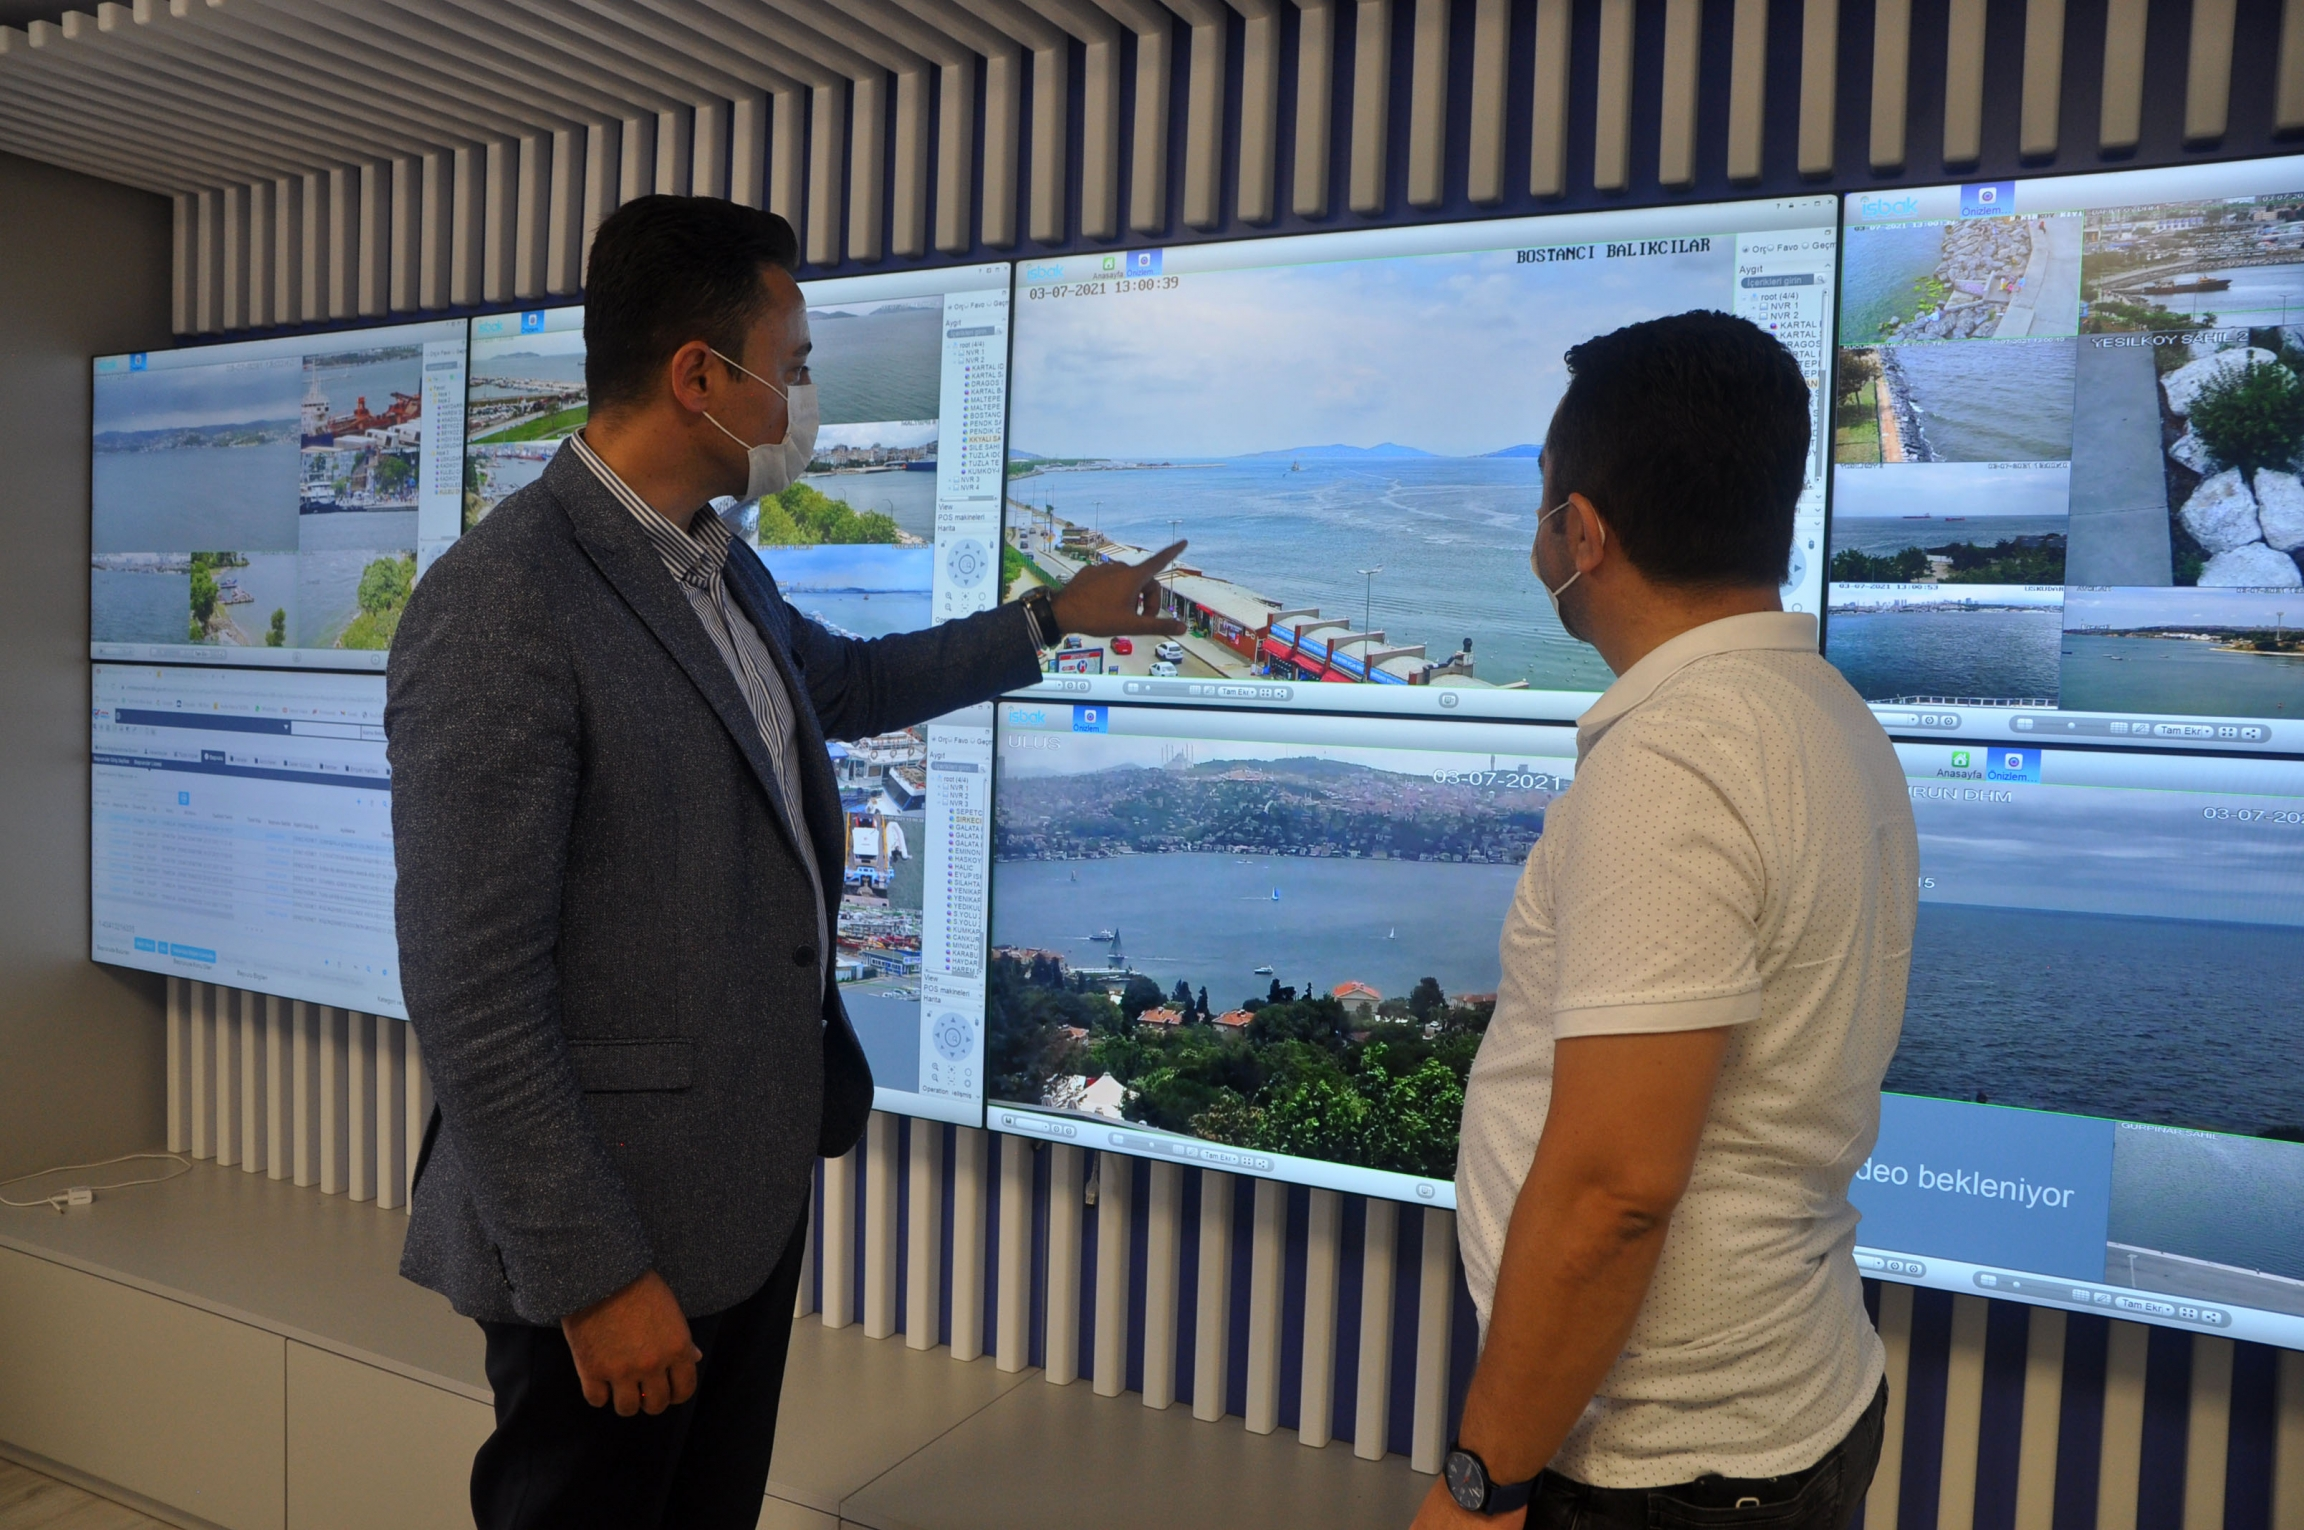 İlker Aslan (left) and Fatih Polat Timur identify a patch of sea snot near the district of Kadiköy, off Istanbul's beach. The setup of monitors was designed by Timur to monitor litter and other pollutants emitted by ship traffic. Tips are radioed into the